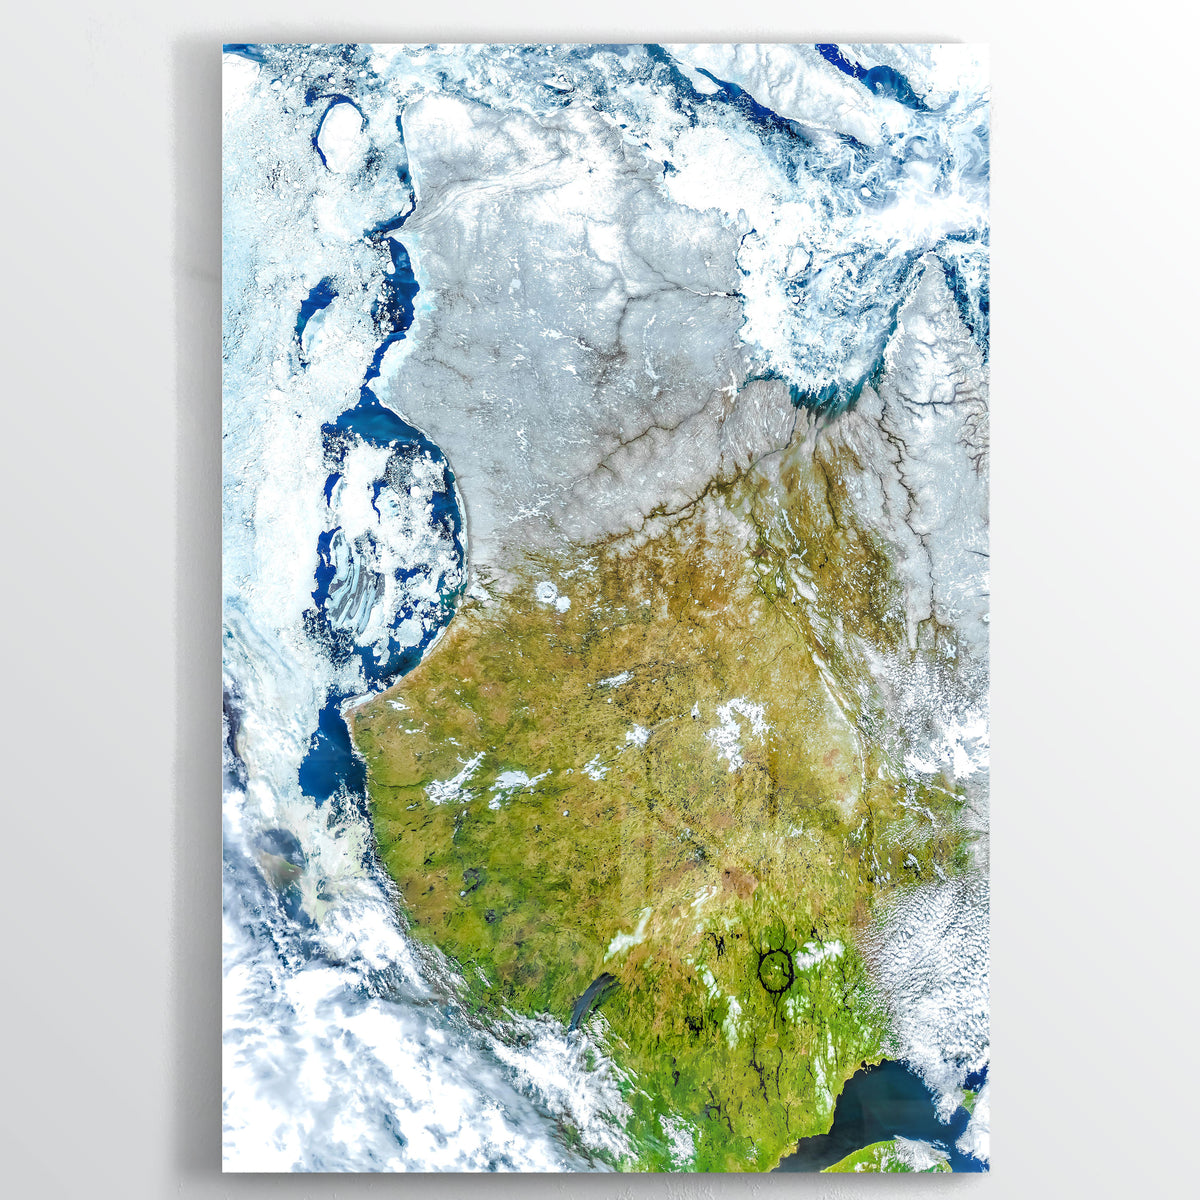 Northern Canada Earth Photography - Floating Acrylic Art